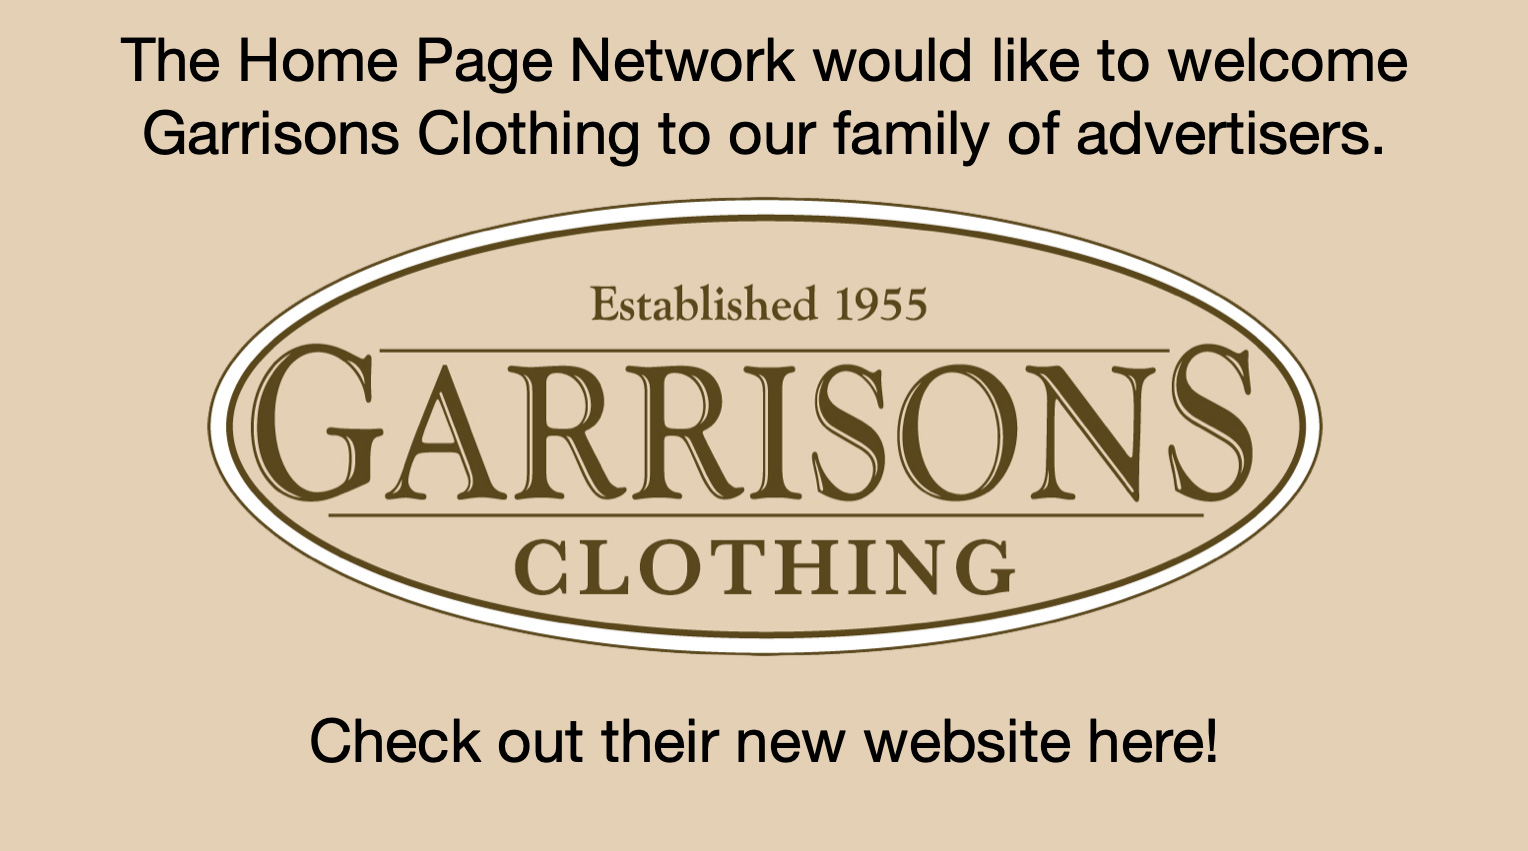 Garrison's Clothing